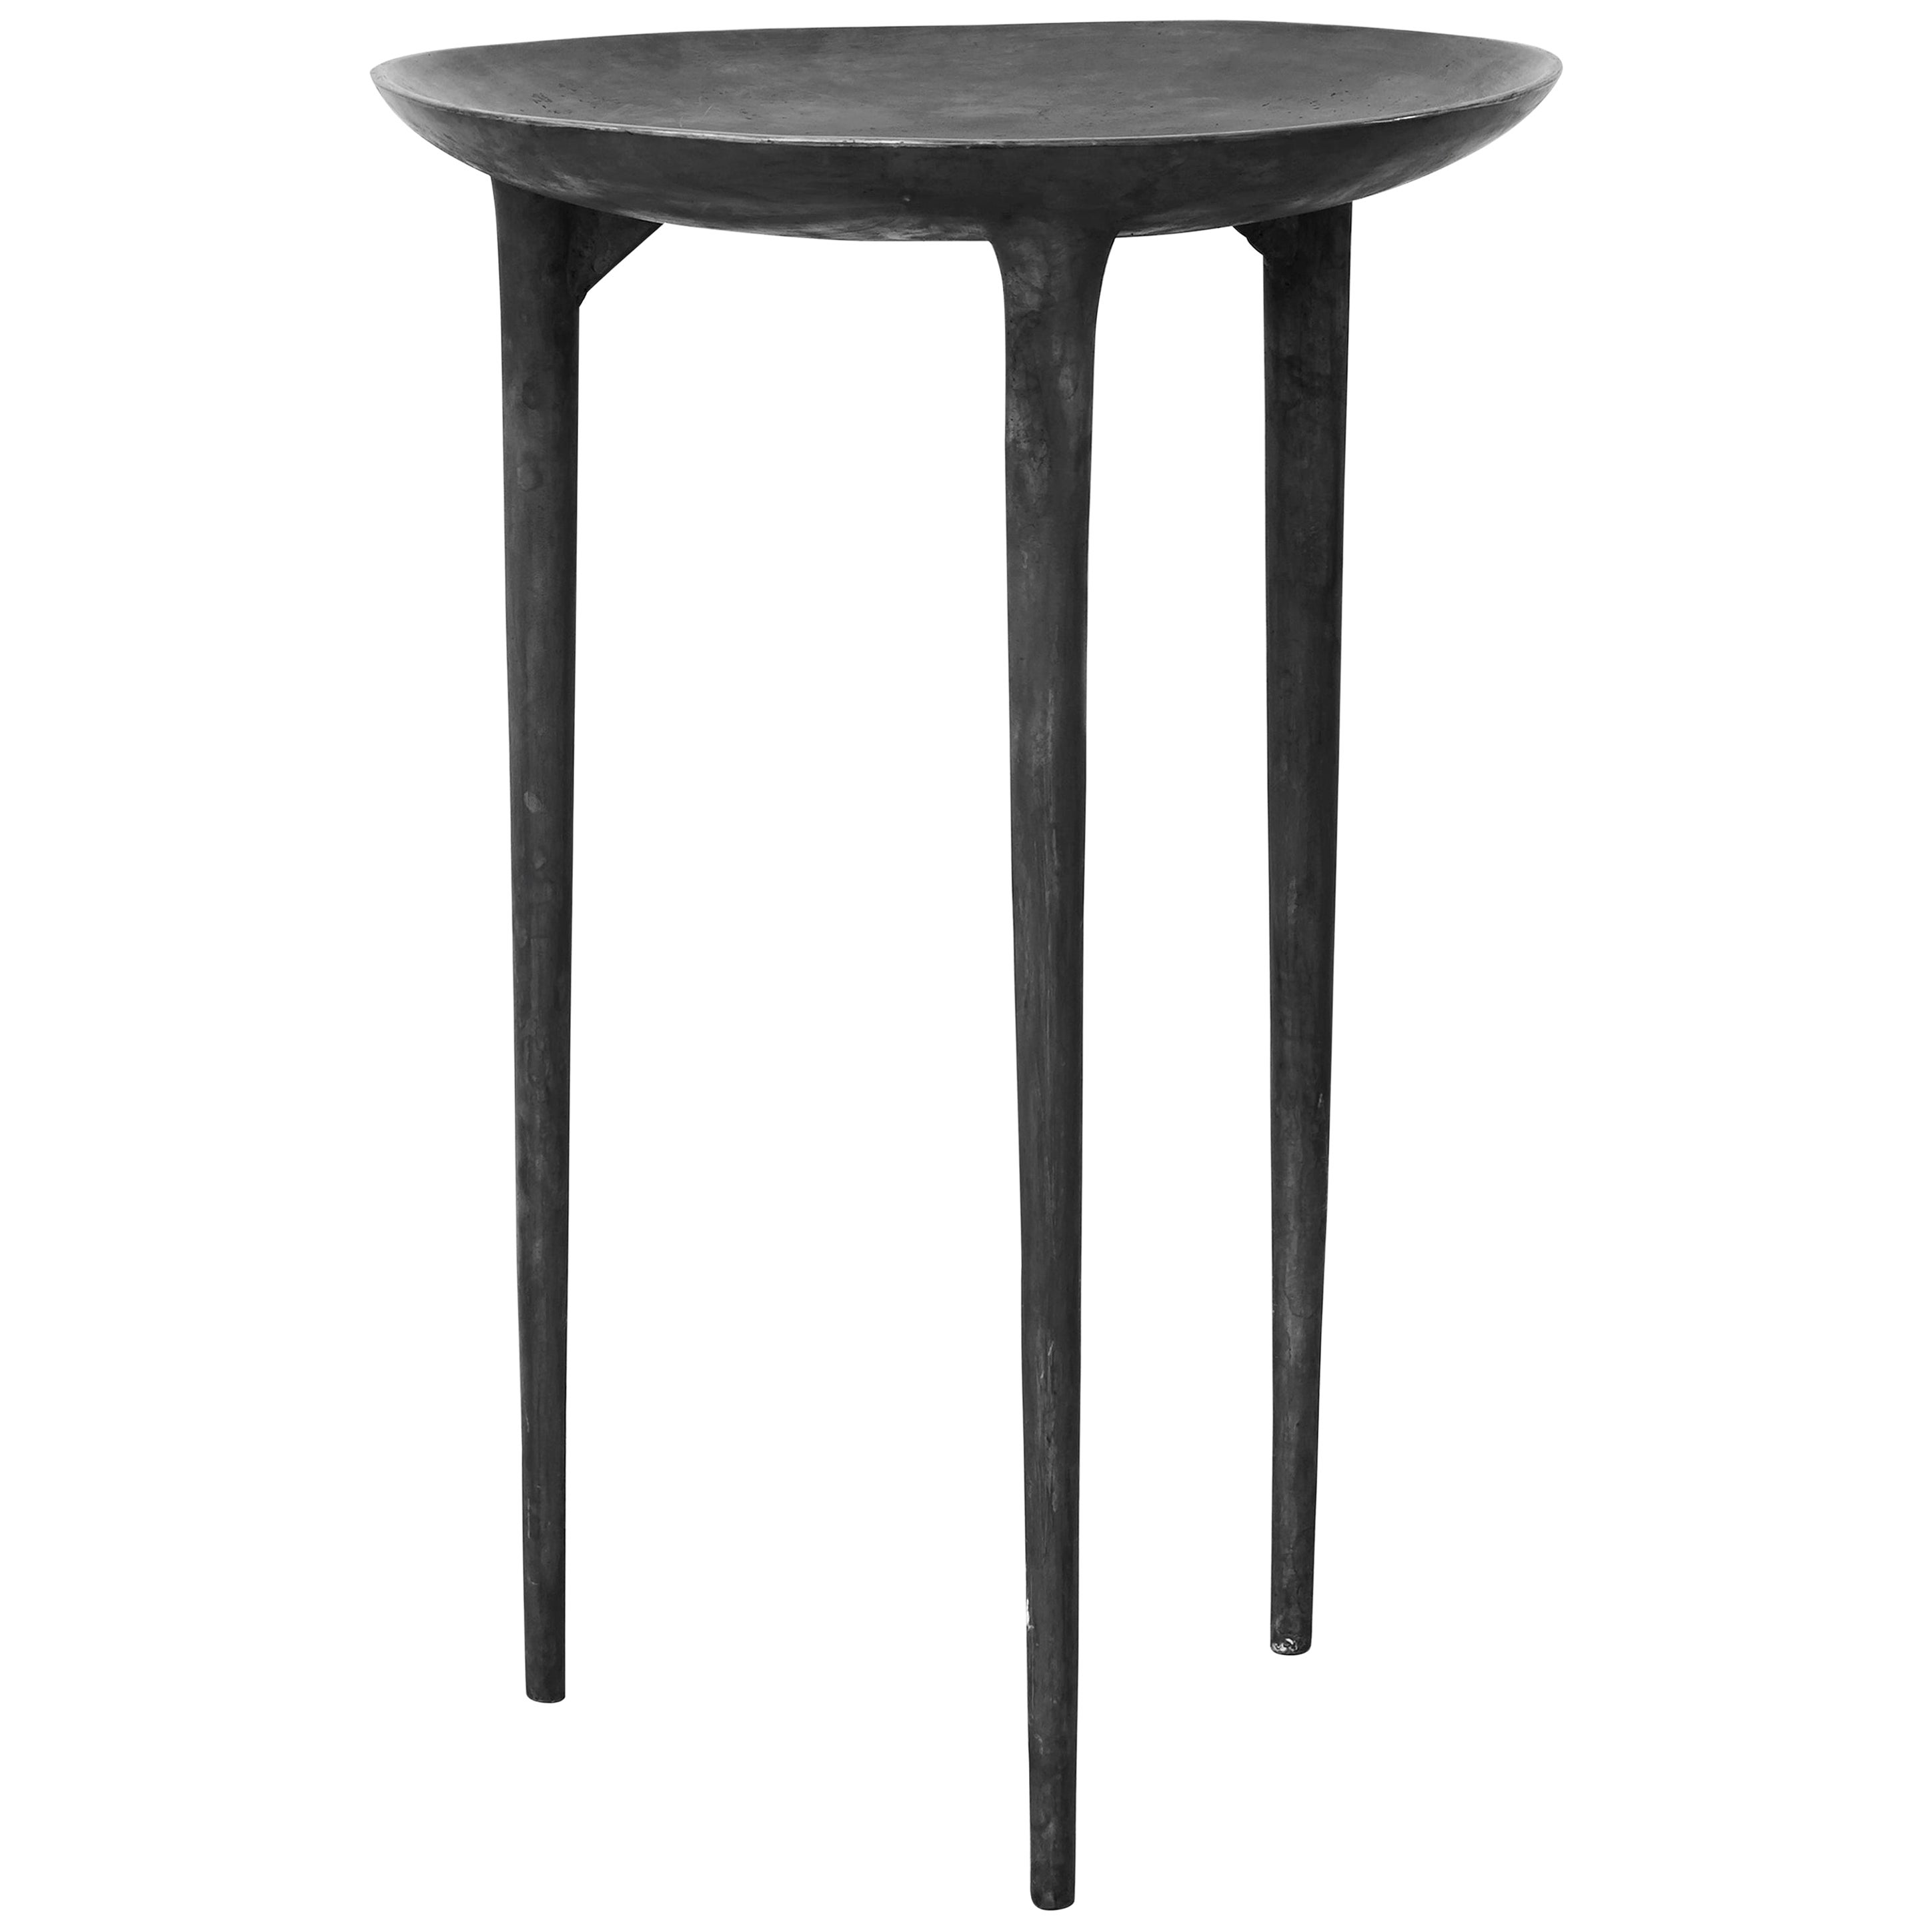 Tall Brazier Table by Rick Owens